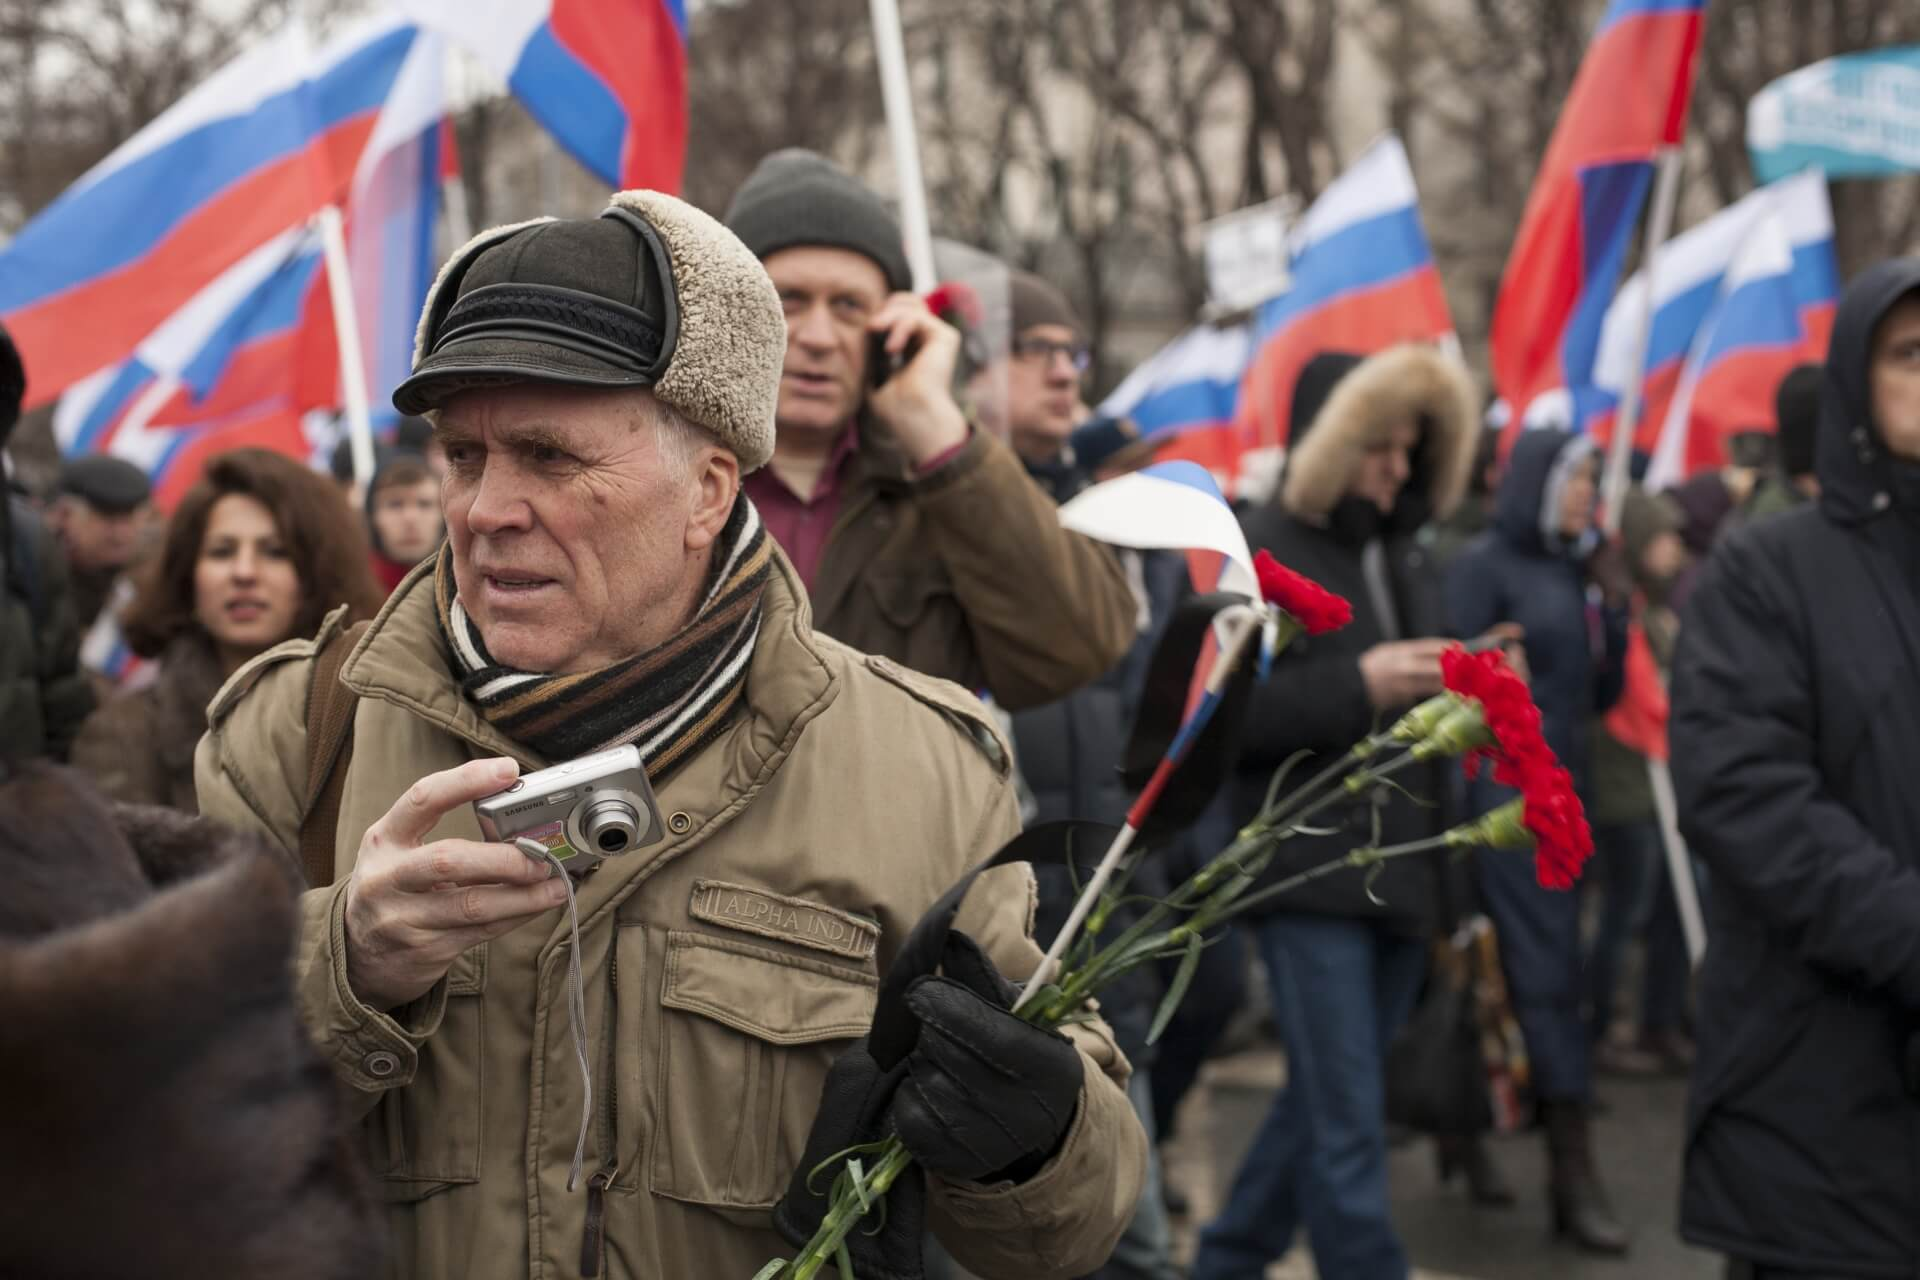 Brouwers-foto5-1 March 2015-Mourning rally in Moscow-Boris Nemtsov murder-Dmitry Nosachev-Flickr